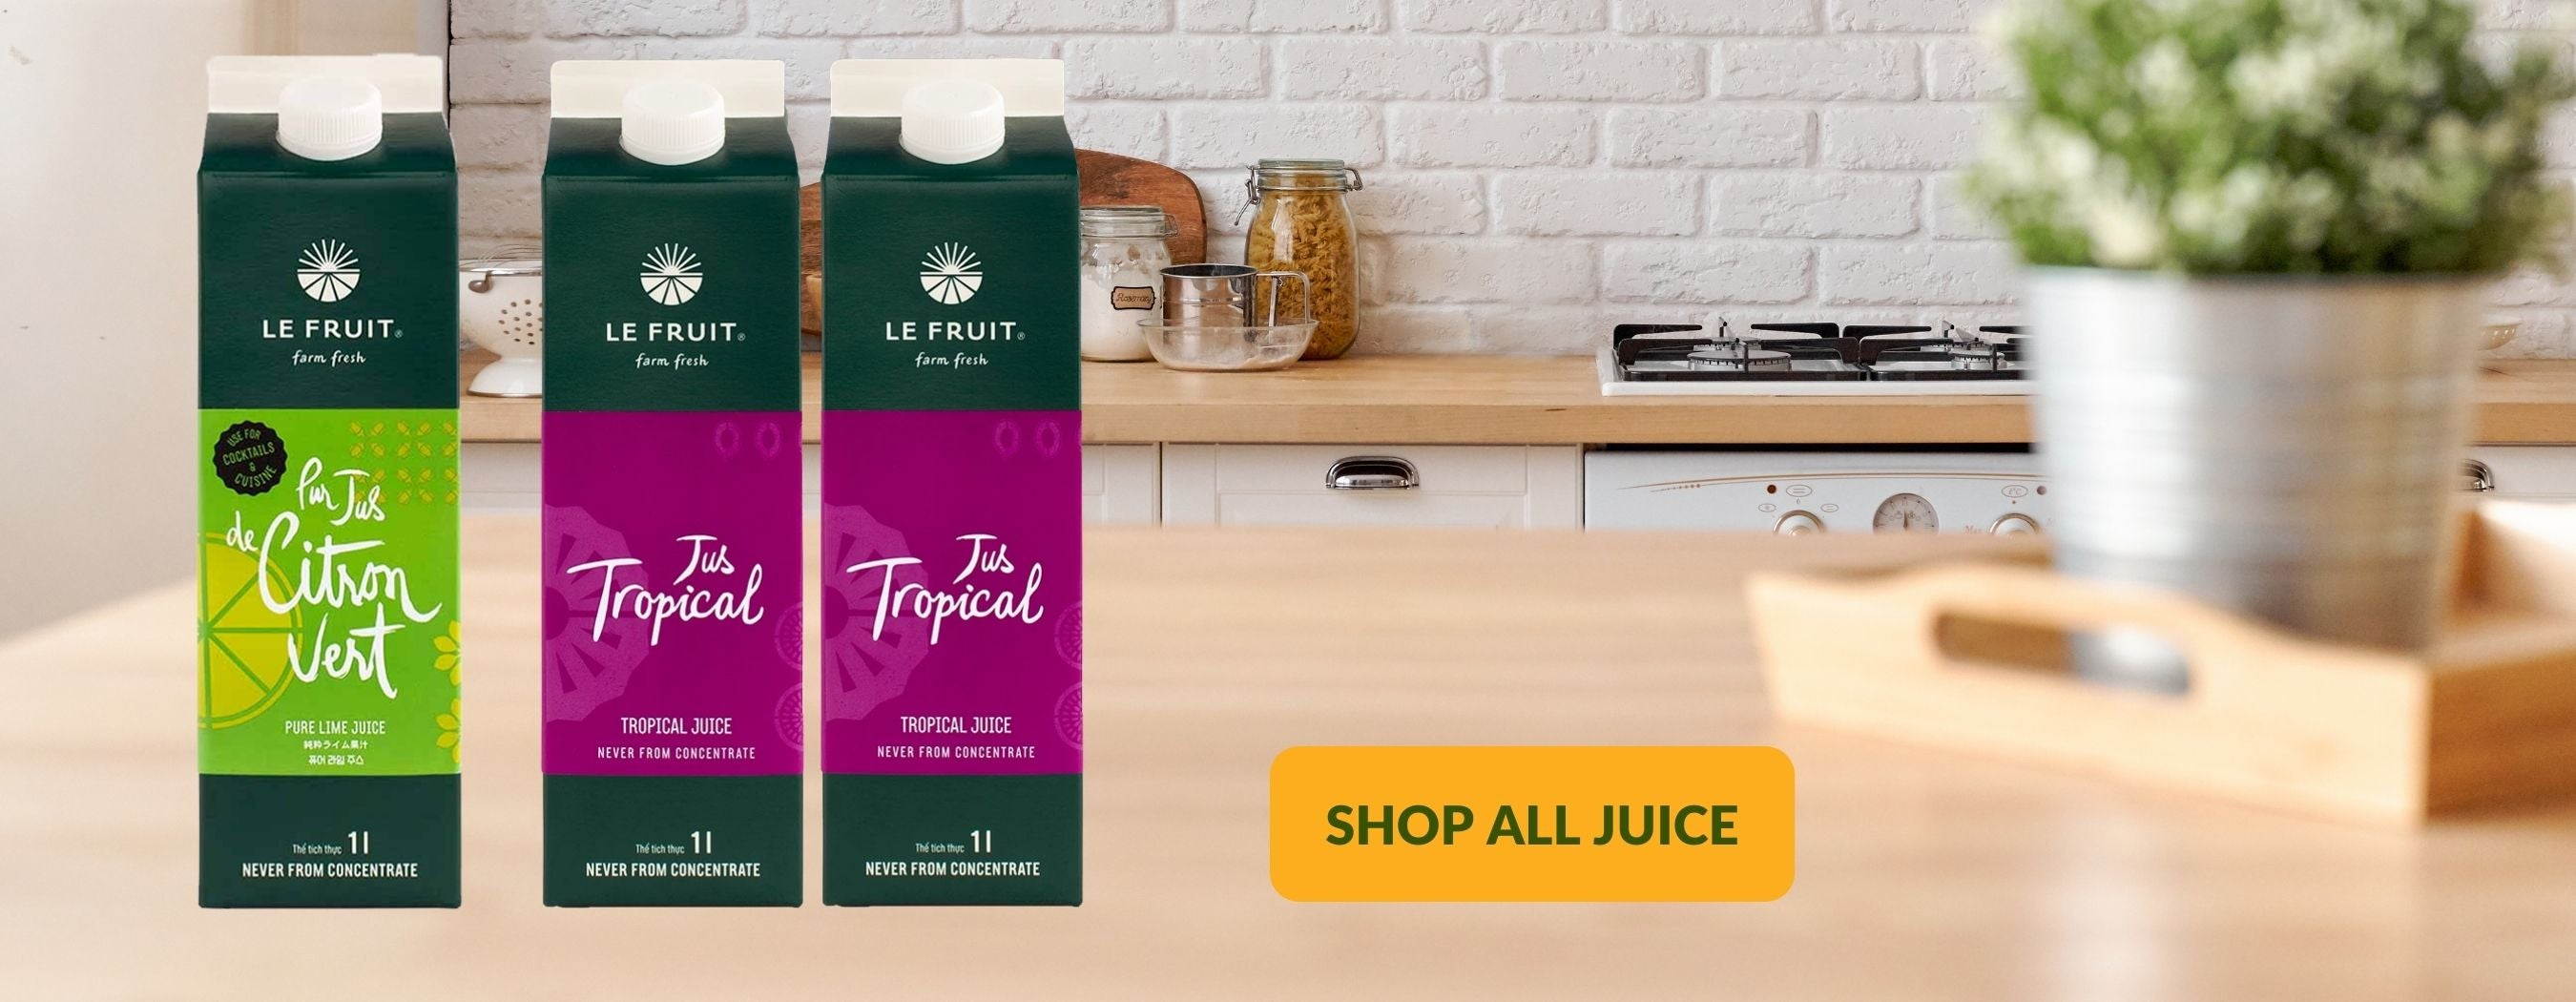 shop all juice non alcoholic beverage on winery.ph